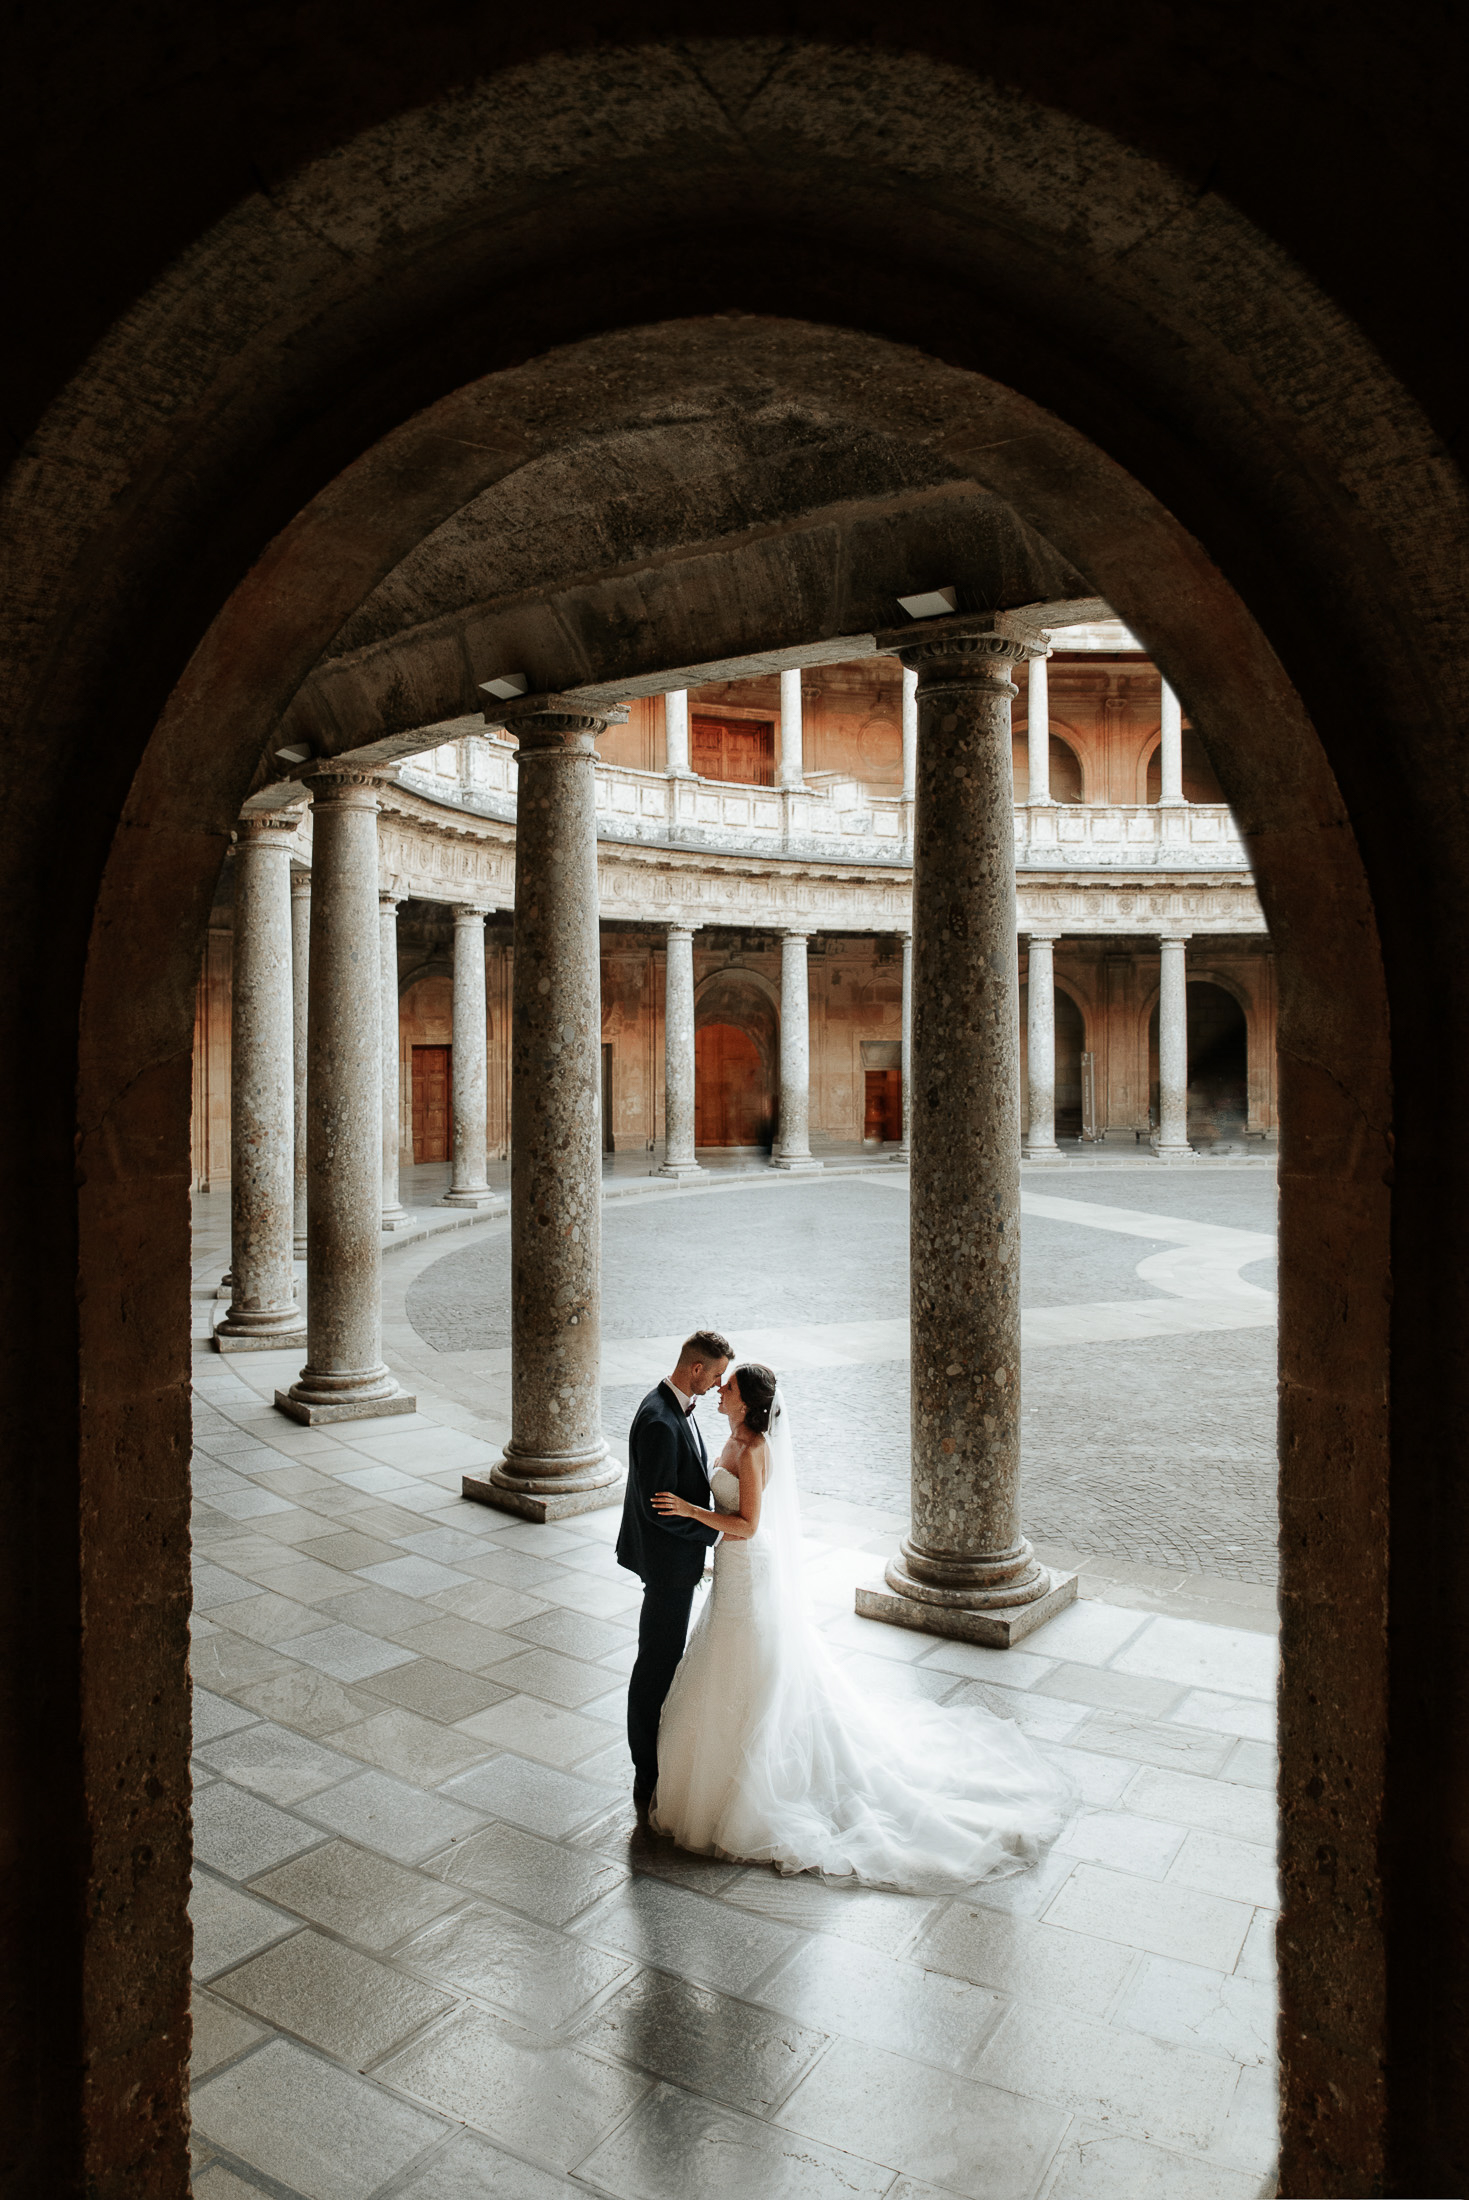 Alhambra Wedding photo shooting in Palace of Charles V